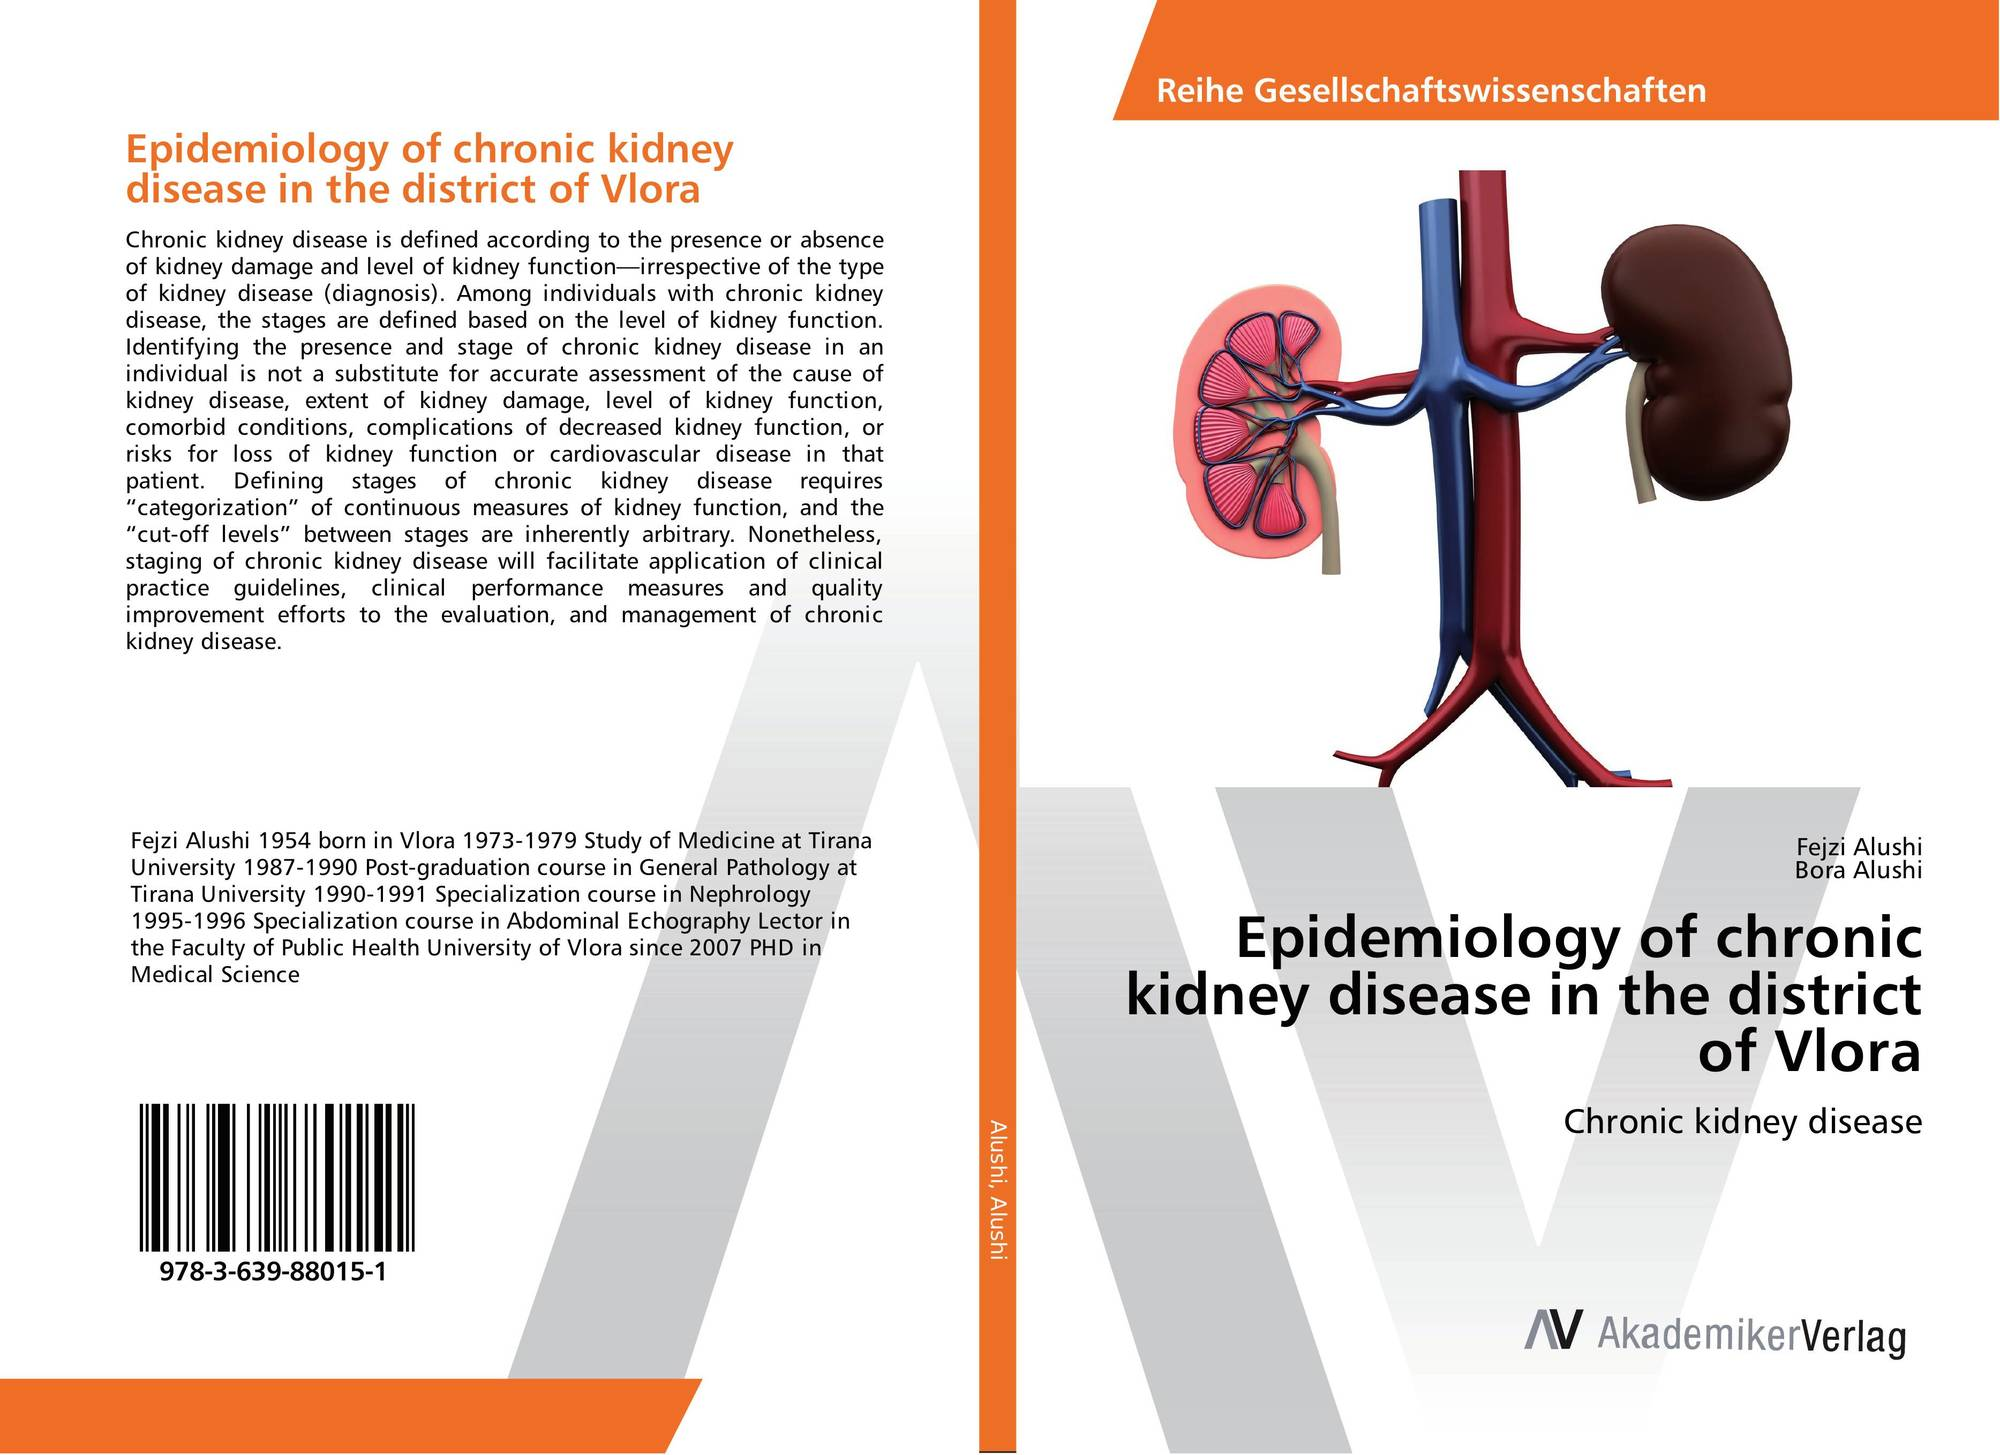 researchcommunication between patients with chronic kidney Br j clin pharmacol 2013 oct76(4):504-15 doi: 101111/bcp12198 measurement of renal function in patients with chronic kidney disease sandilands ea(1), dhaun n, dear jw, webb dj author information: (1)national poisons information service edinburgh, royal infirmary of edinburgh, edinburgh, uk chronic kidney.